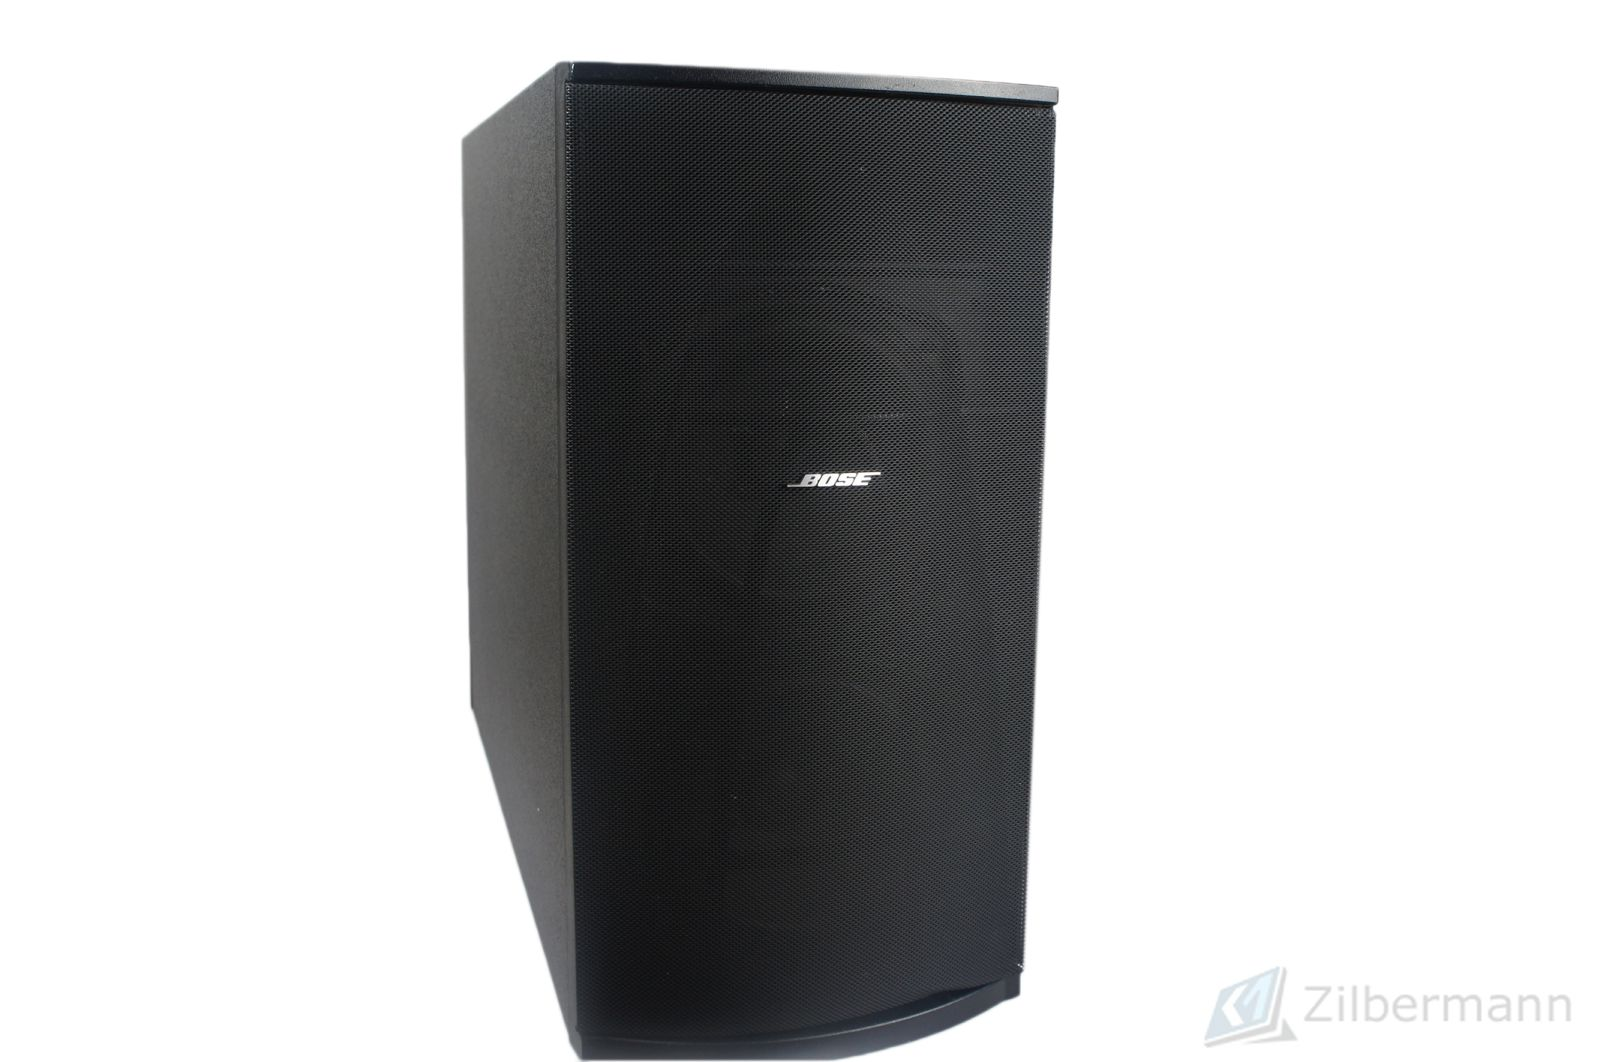 Bose_Lifestyle_28_PS28_PS_28_Powered_Heimkino-system_Subwoofer_07